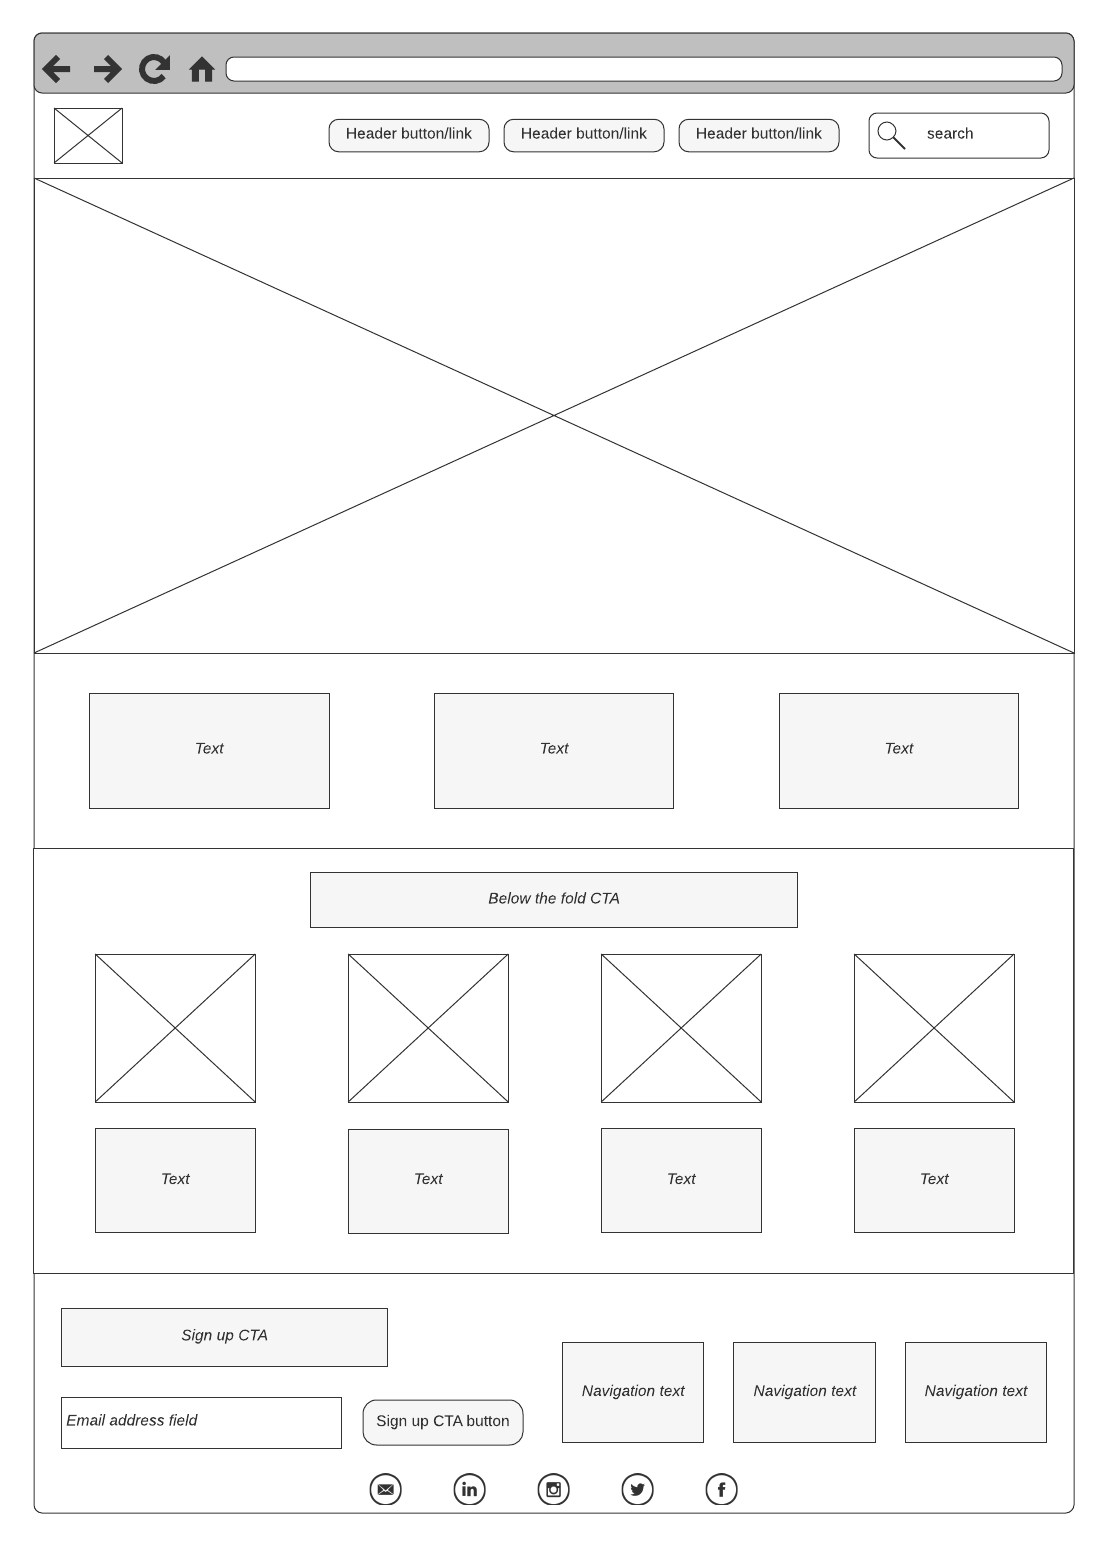 Simple wireframe example (source: LucidChart)